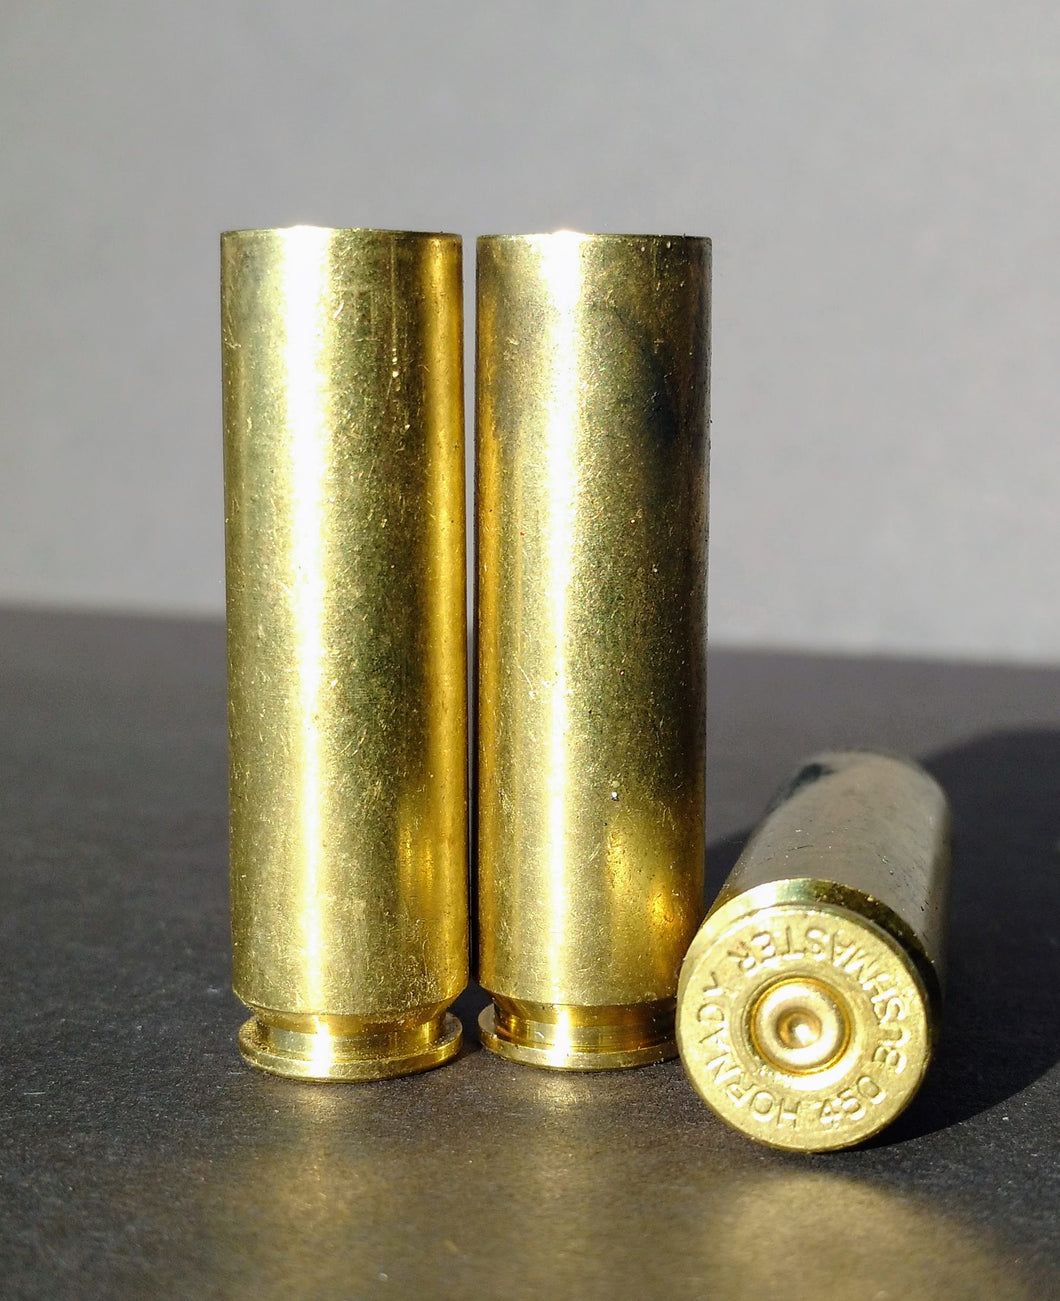 450 Bushmaster Mixed Headstamp Brass Cases for Reloading